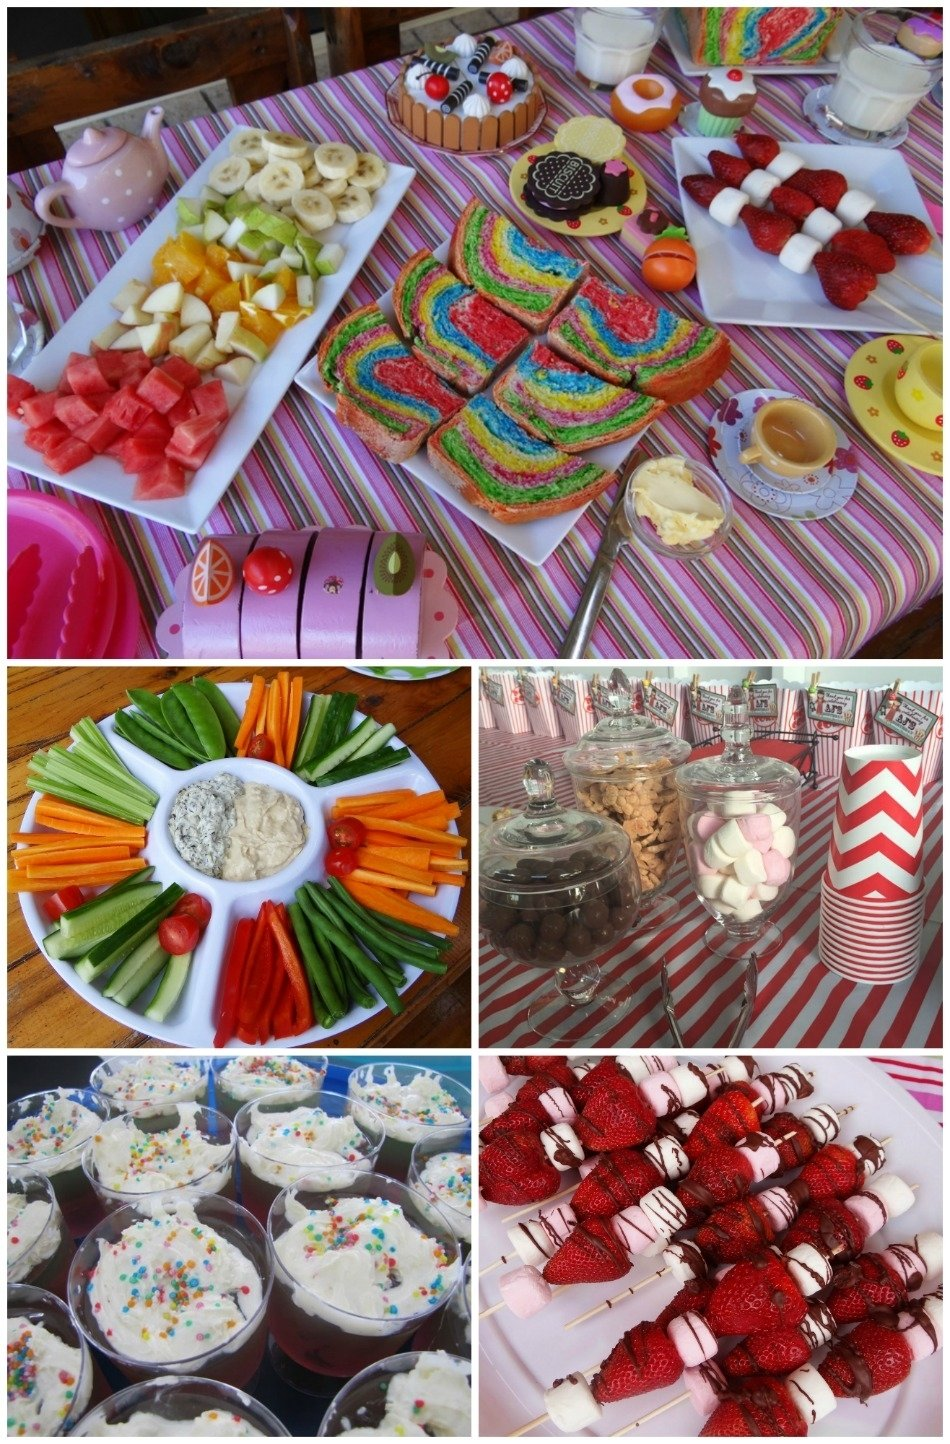 10 Beautiful Party Food Ideas For Kids 50 kids party food ideas be a fun mum 1 2020